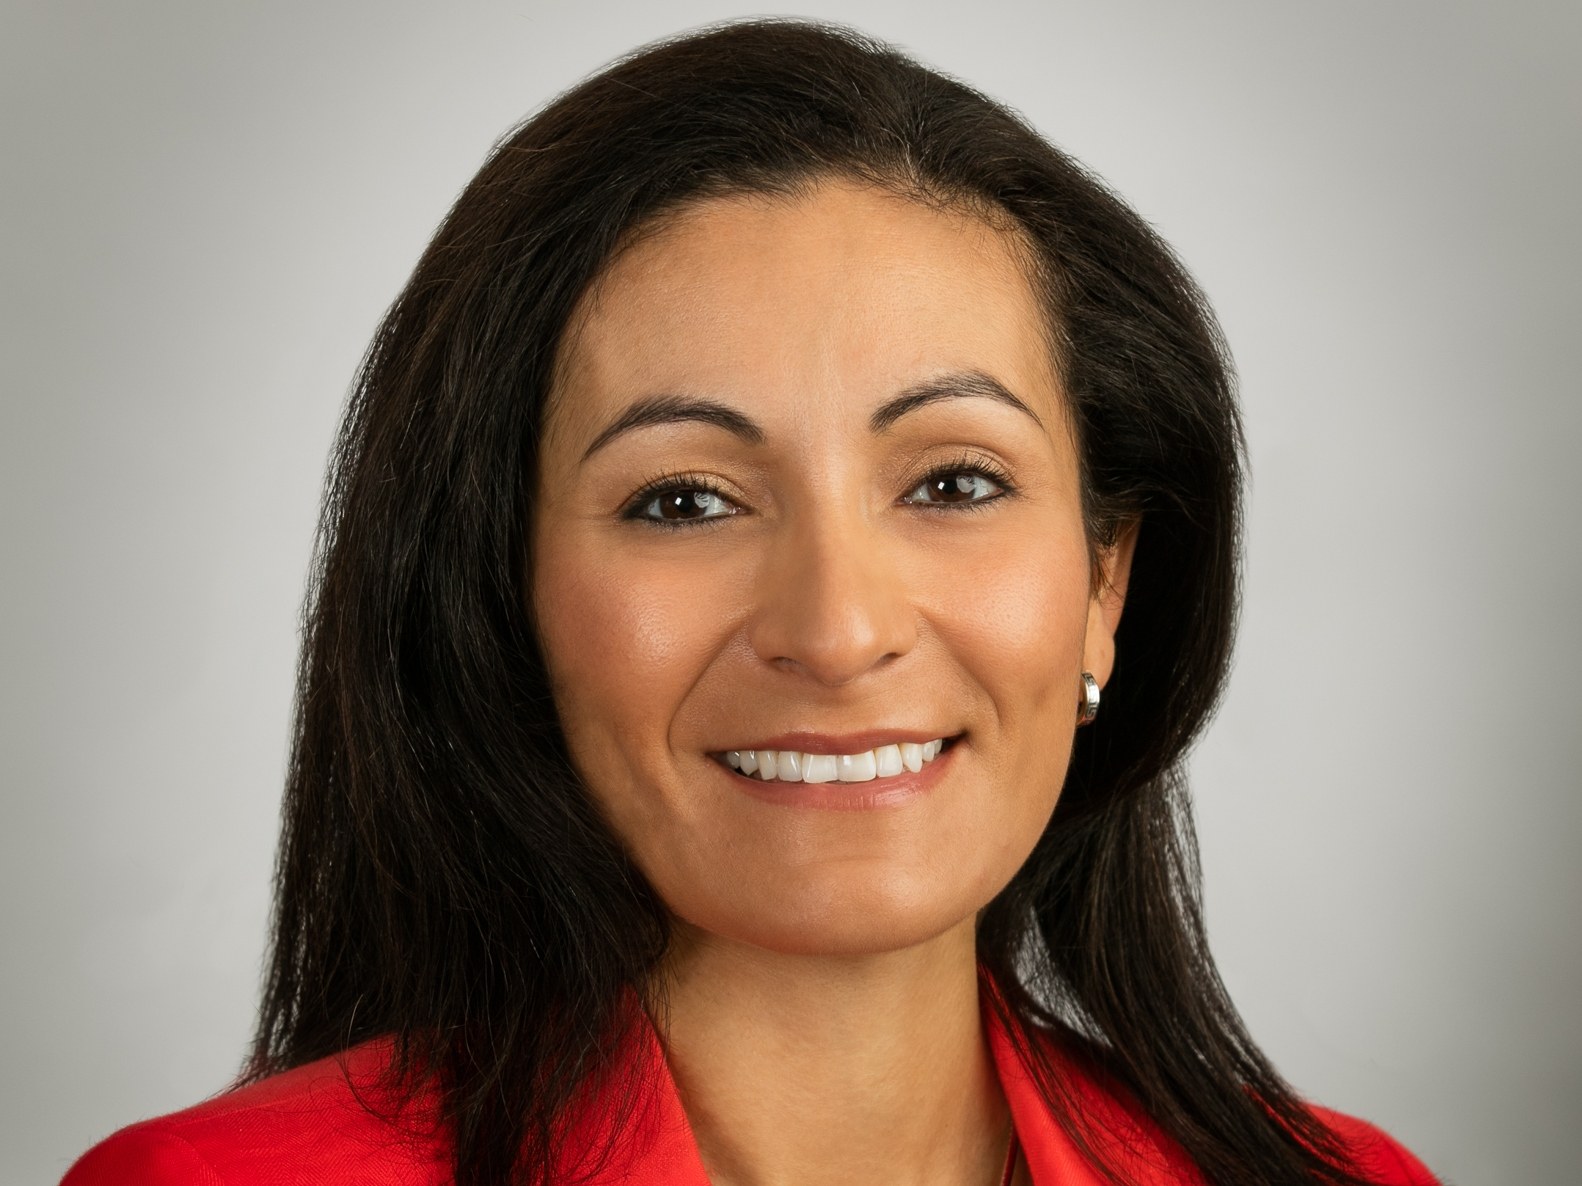 Mentor By JNJ President, Diane Gomez-Thinnes On Covid-Era Comms & The Importance Of Female Mentors In Marketing